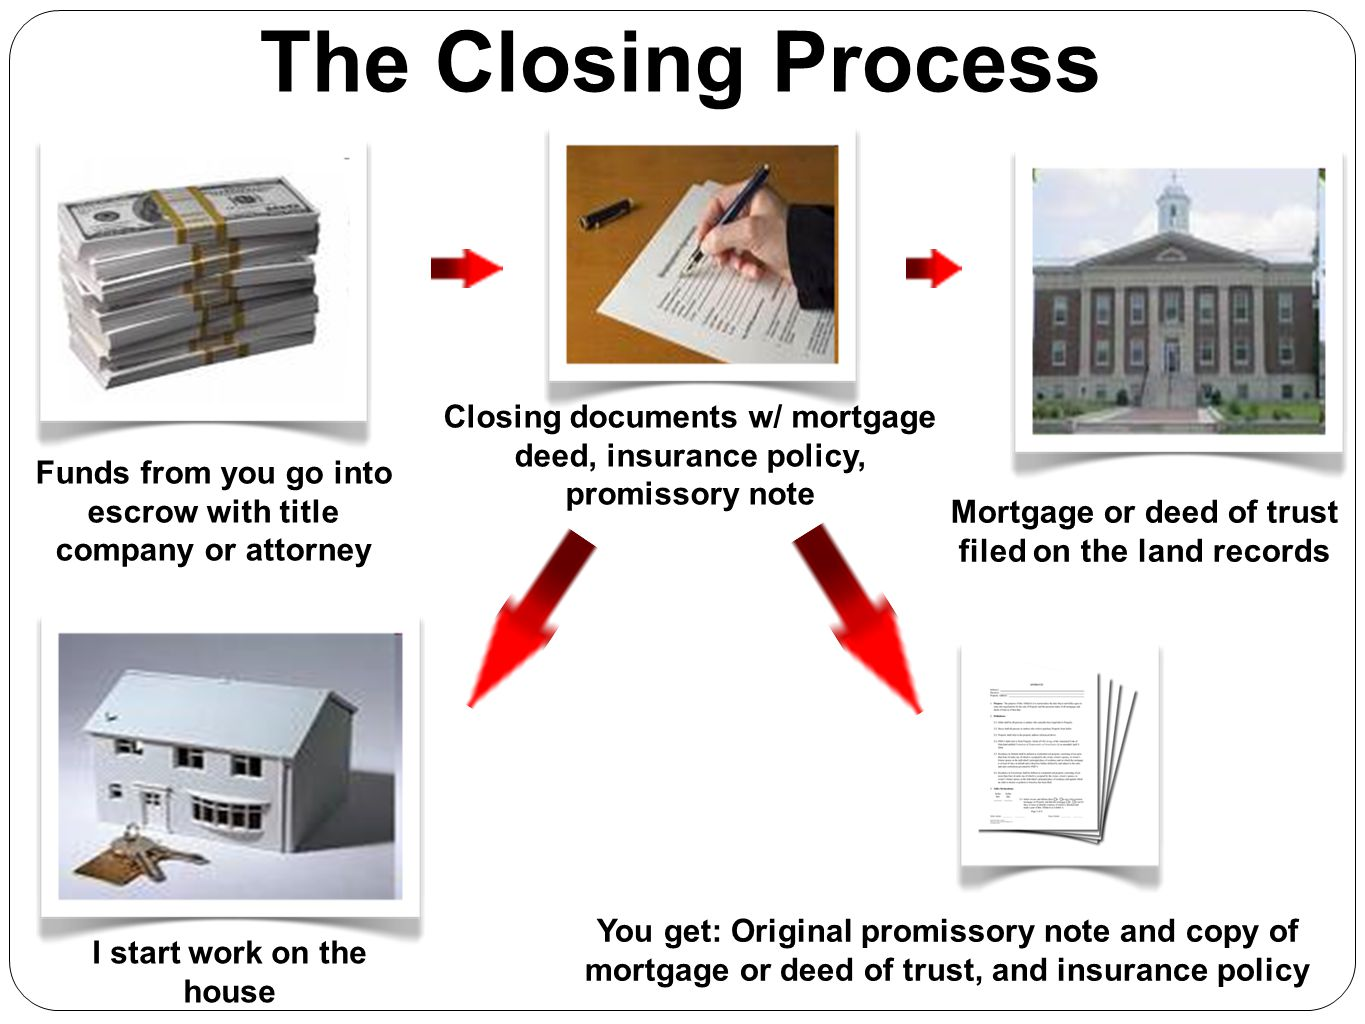 Funds from you go into escrow with title company or attorney Closing documents w/ mortgage deed, insurance policy, promissory note Mortgage or deed of